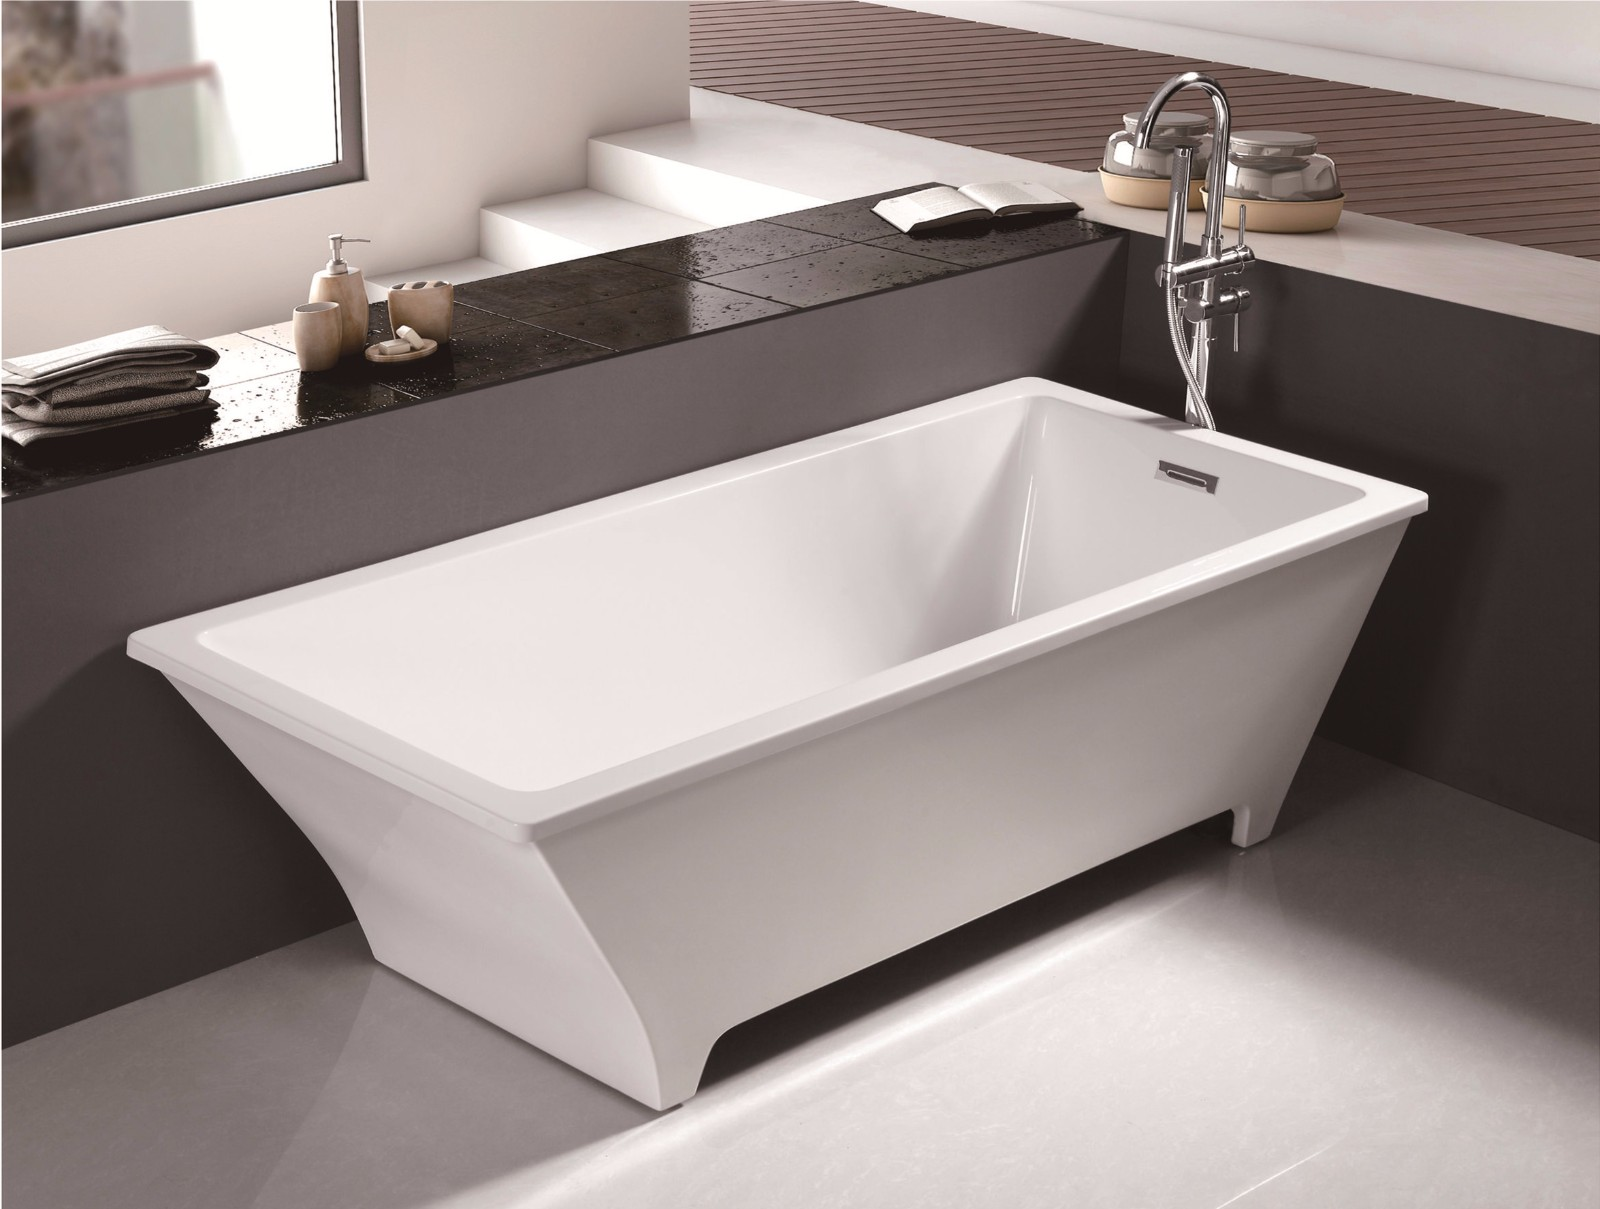 (3)MEC3134-Irregular Rectangular Polished Chrome White Freestanding Bathtub.jpg